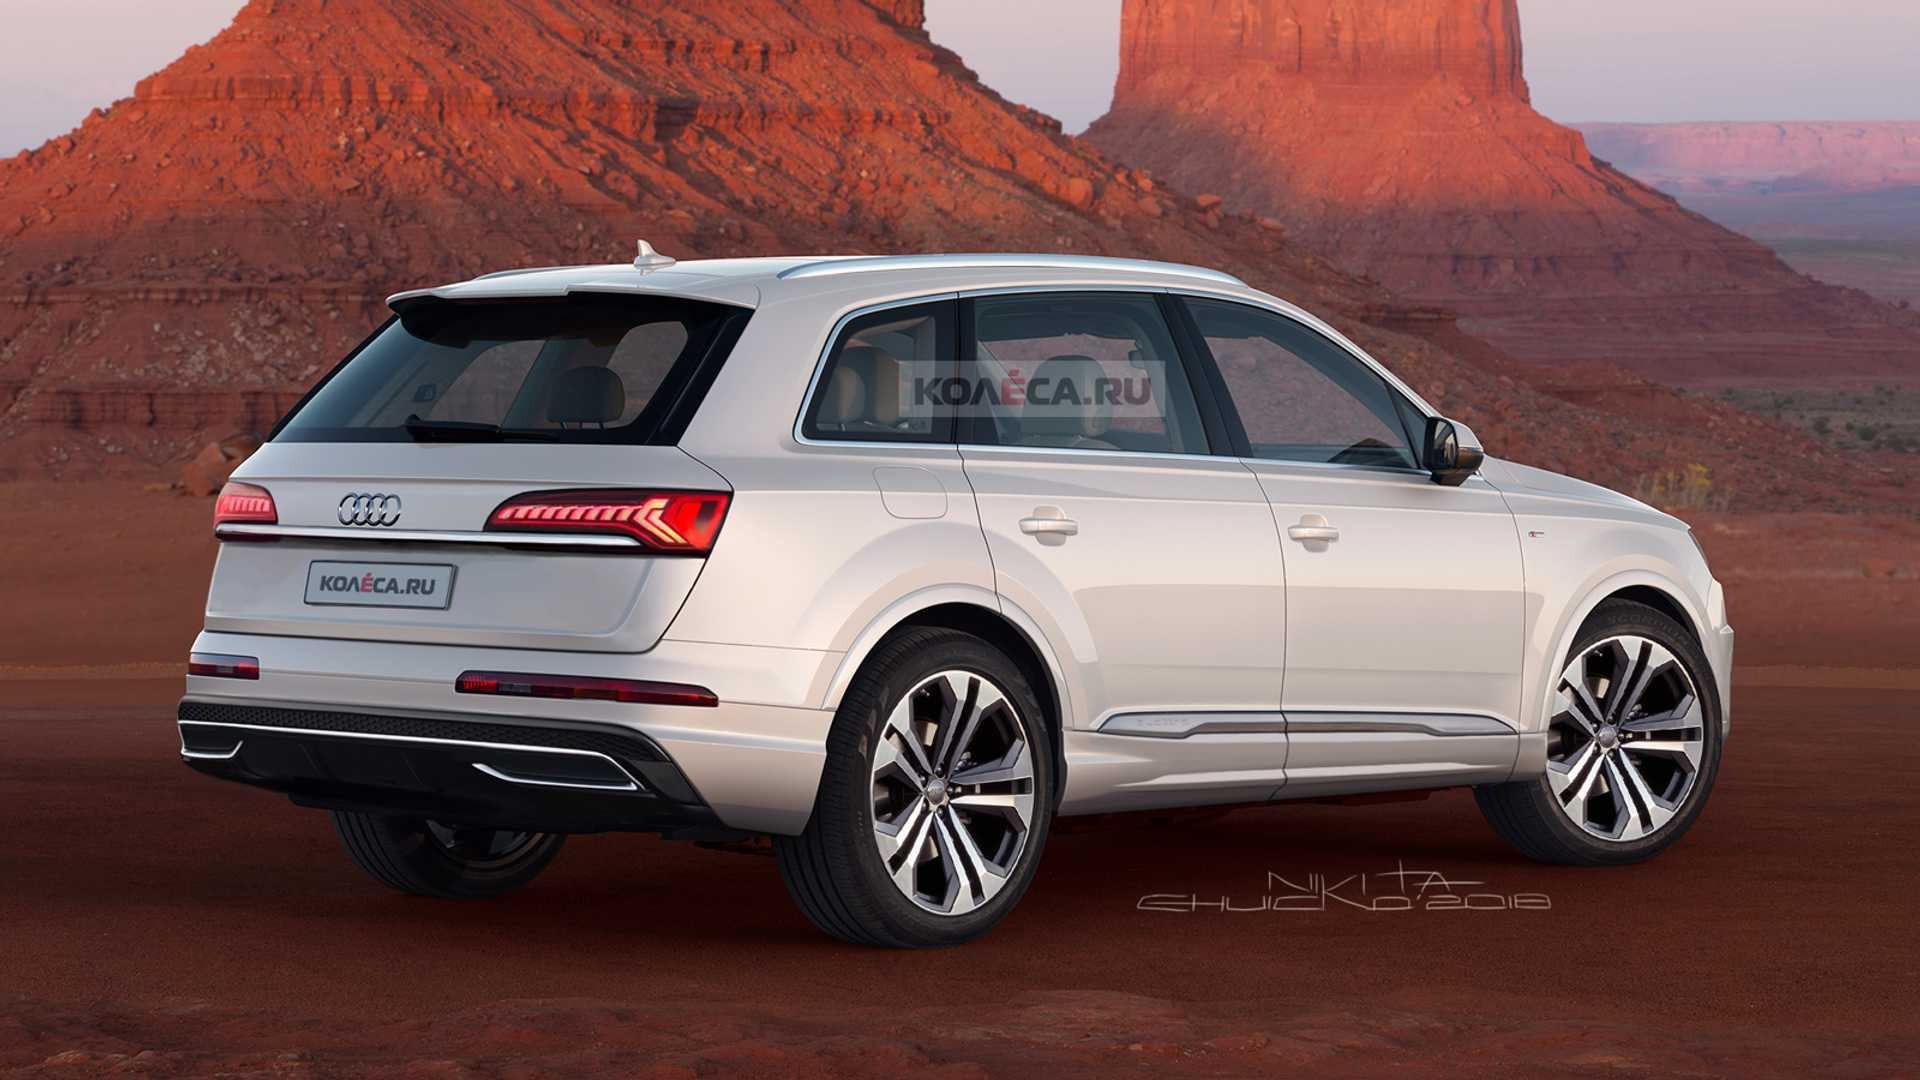 81 Gallery of When Does 2020 Audi Q7 Come Out Picture for When Does 2020 Audi Q7 Come Out